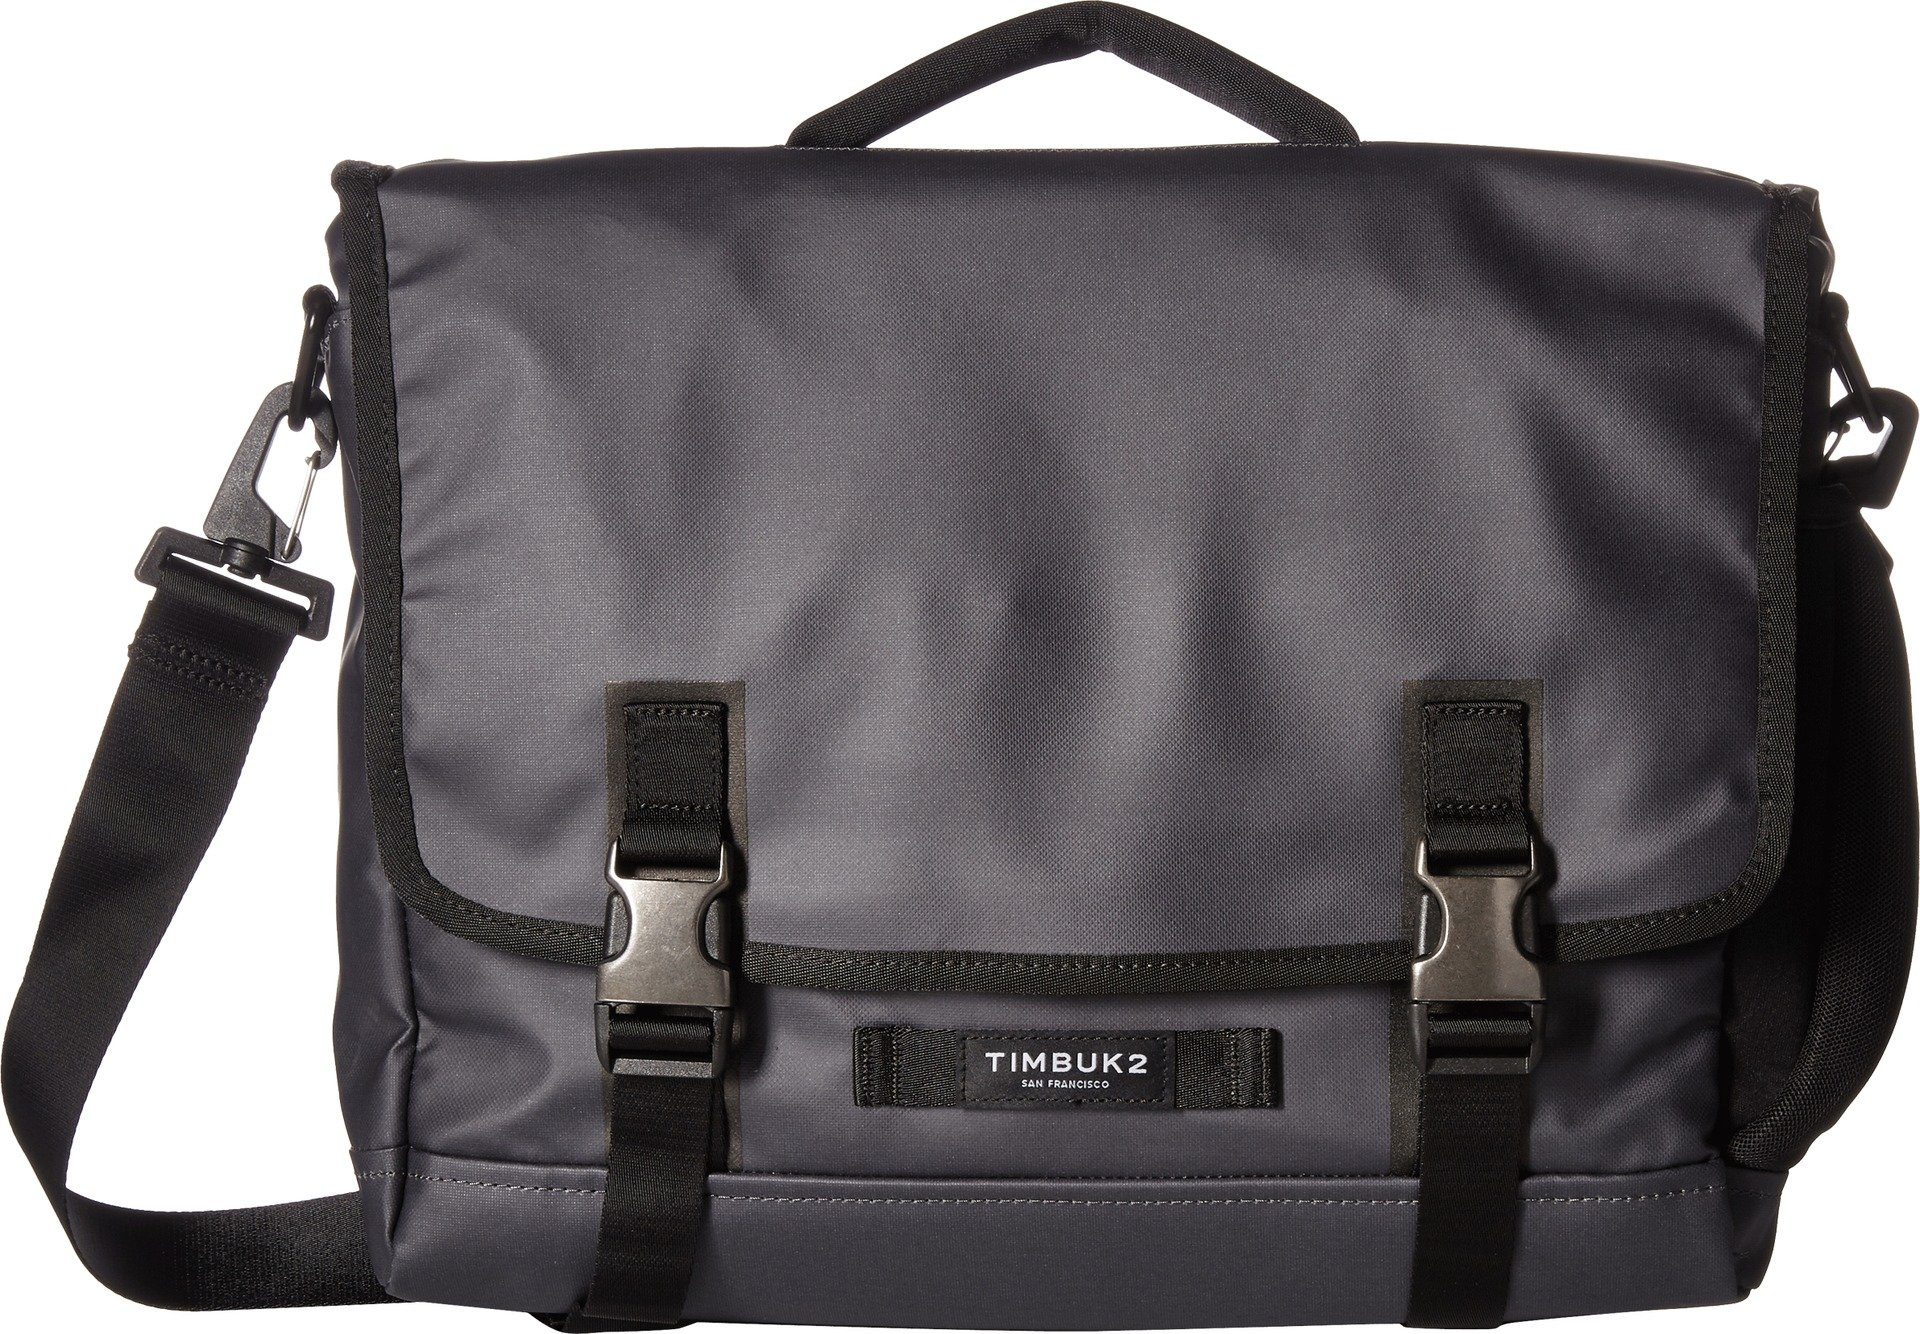 Timbuk2 Transit Collection The Closer Case (Storm, Small)